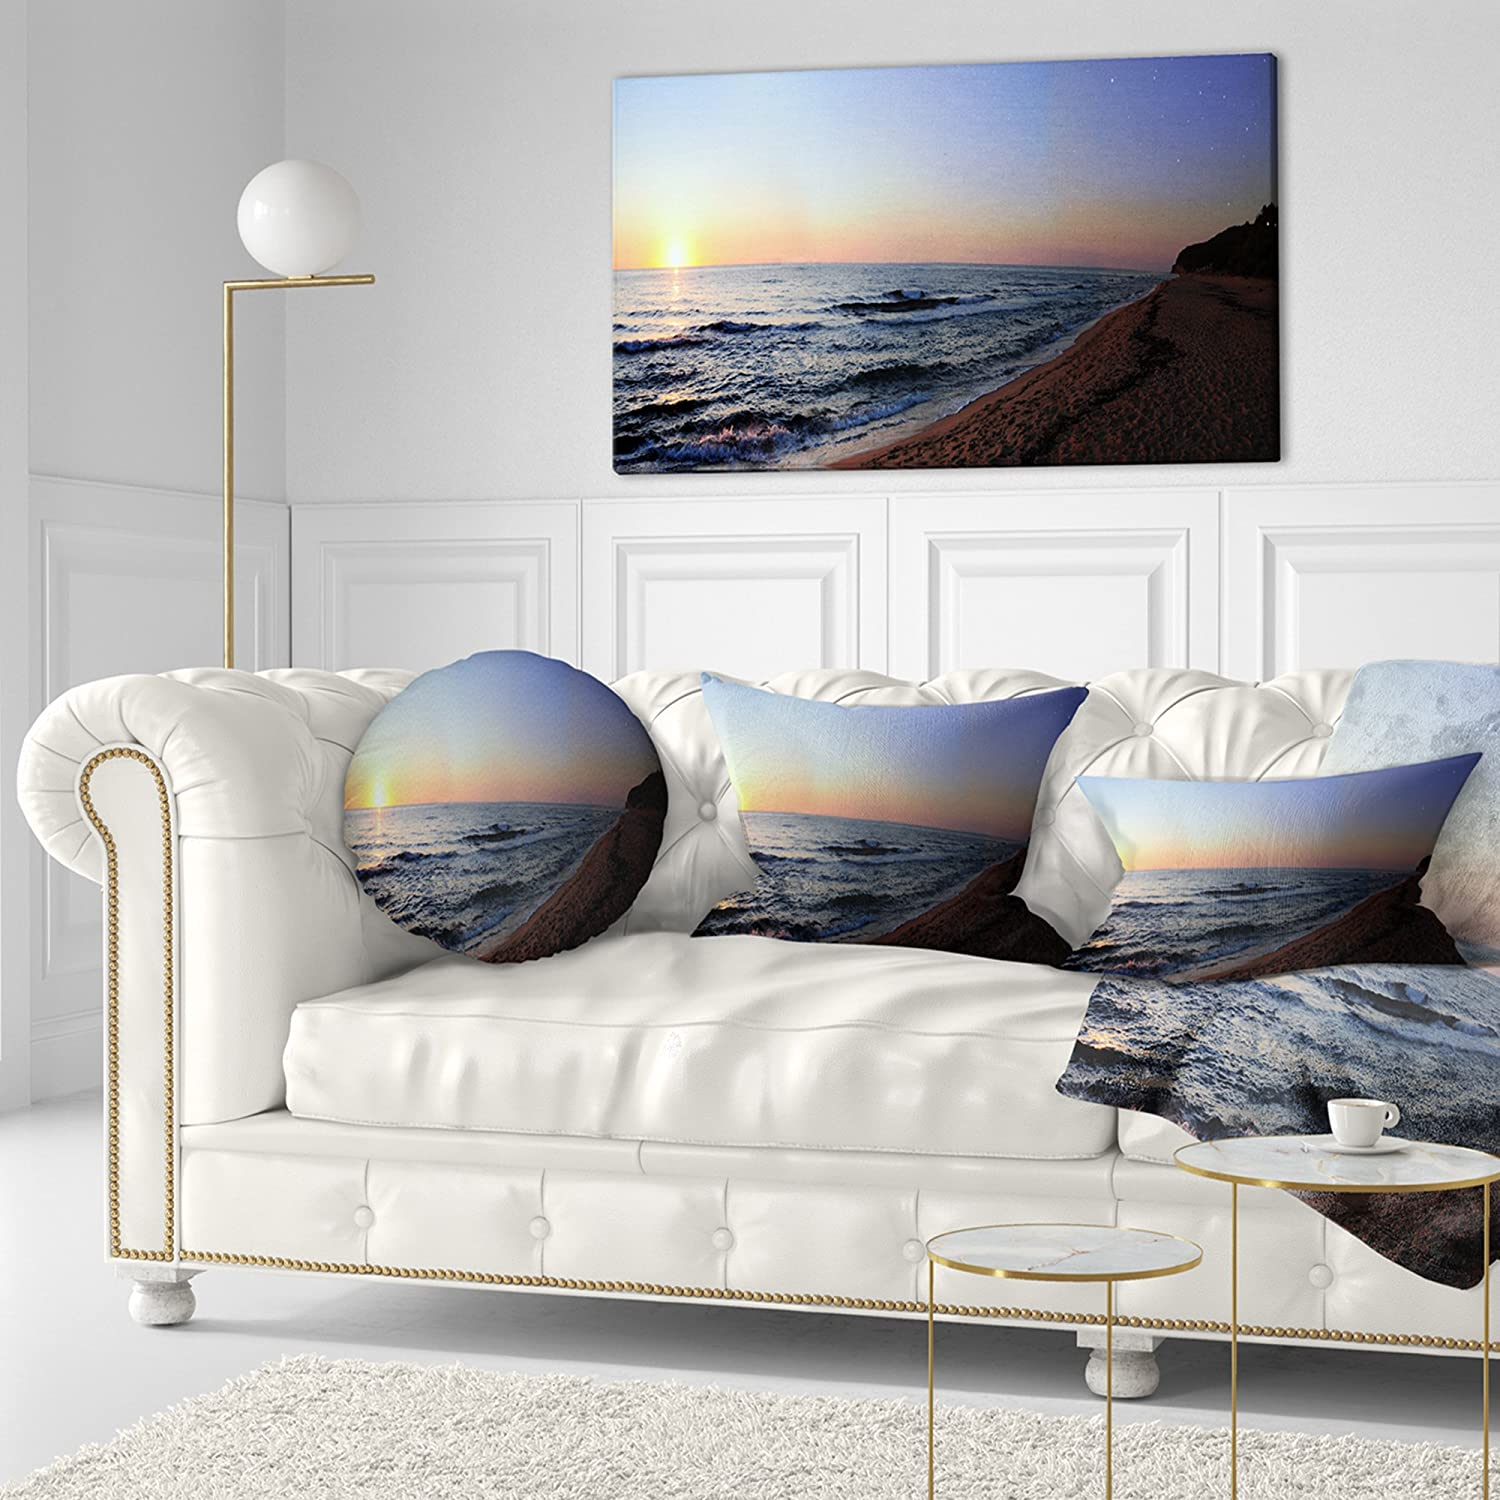 Designart CU10870-20-20-C Sunset Beach Panorama Modern Seashore Round Cushion Cover for Living Room Insert Printed On Both Side Sofa Throw Pillow 20